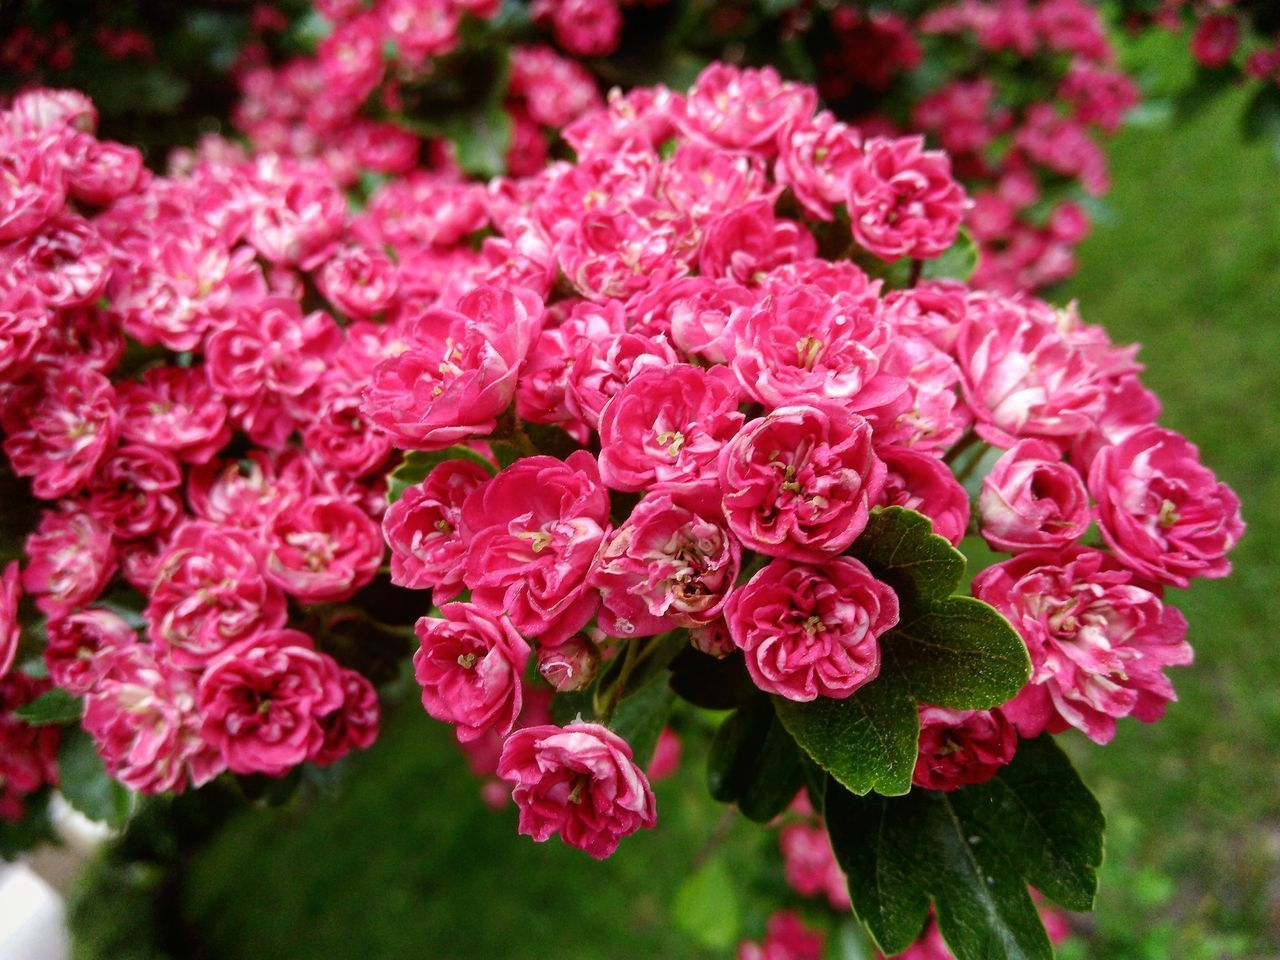 Beauty In Nature Blooming Day Flower Flower Head Freshness Garden Hawthorn Nature Outdoors Pink Pink Color Plant Spring